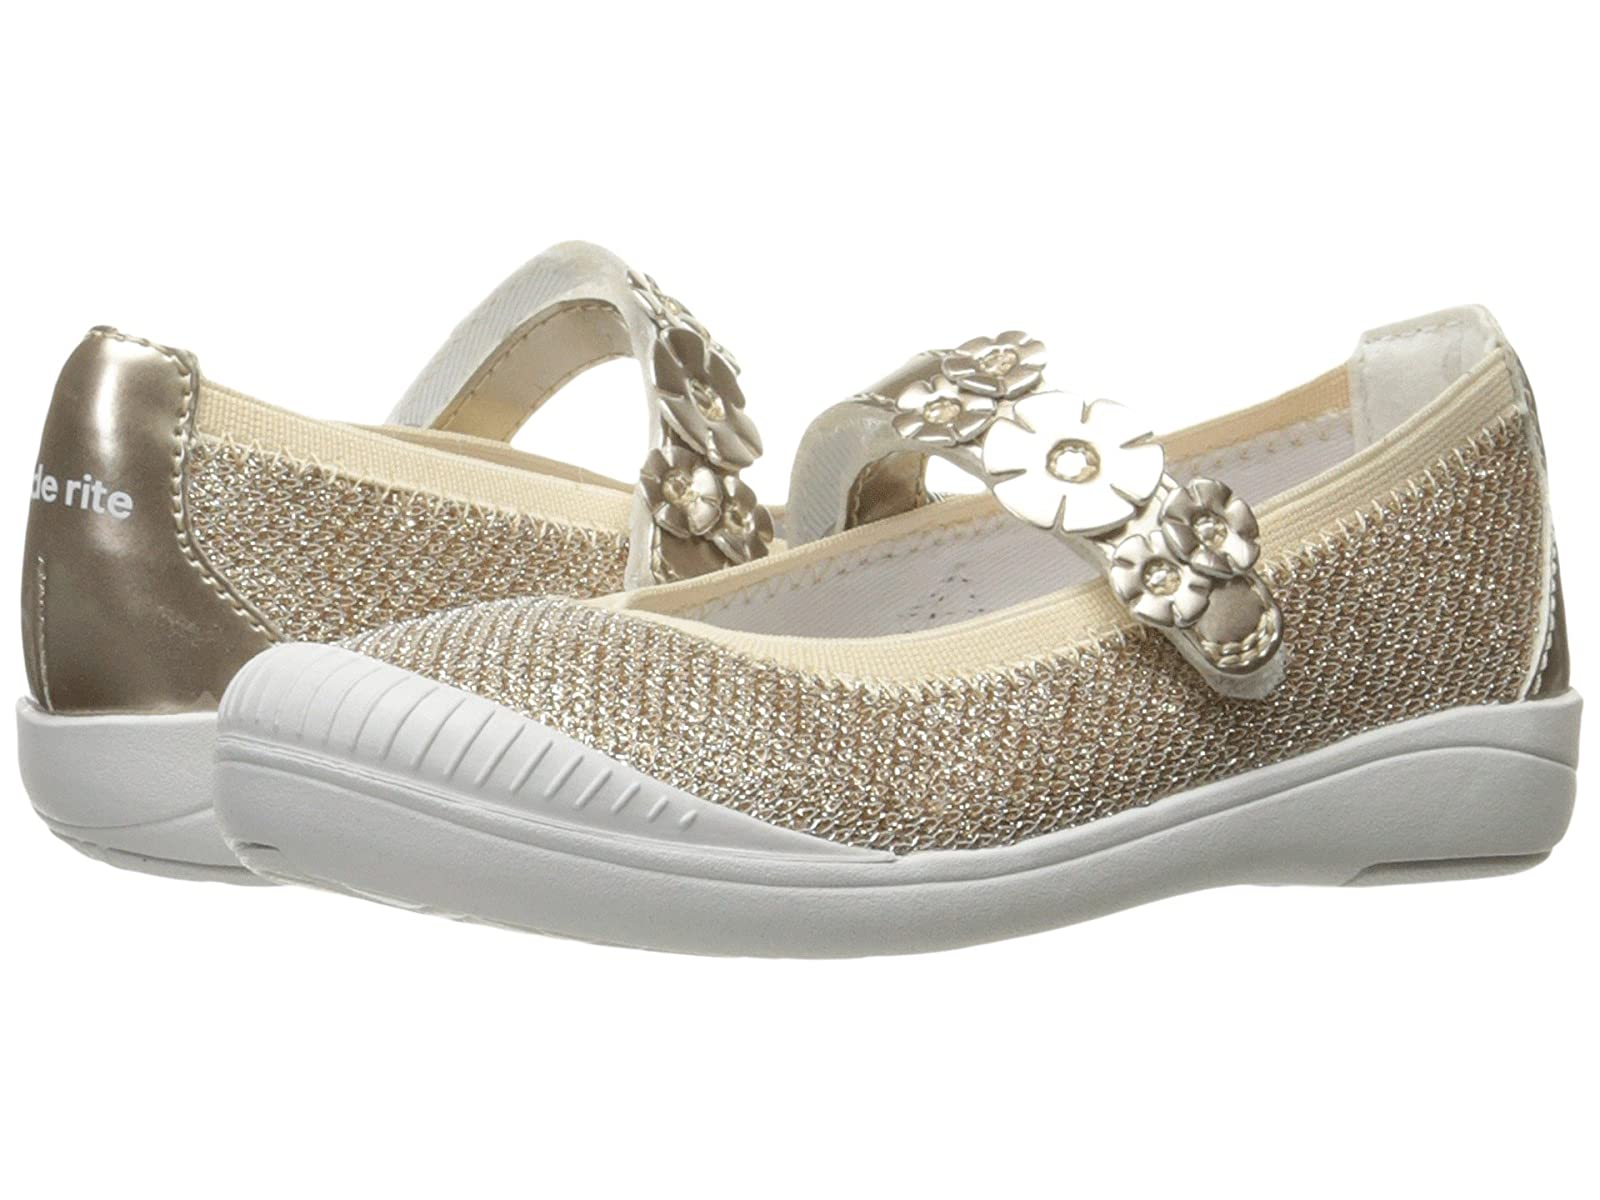 Stride Rite Layla (Little Kid)Atmospheric grades have affordable shoes